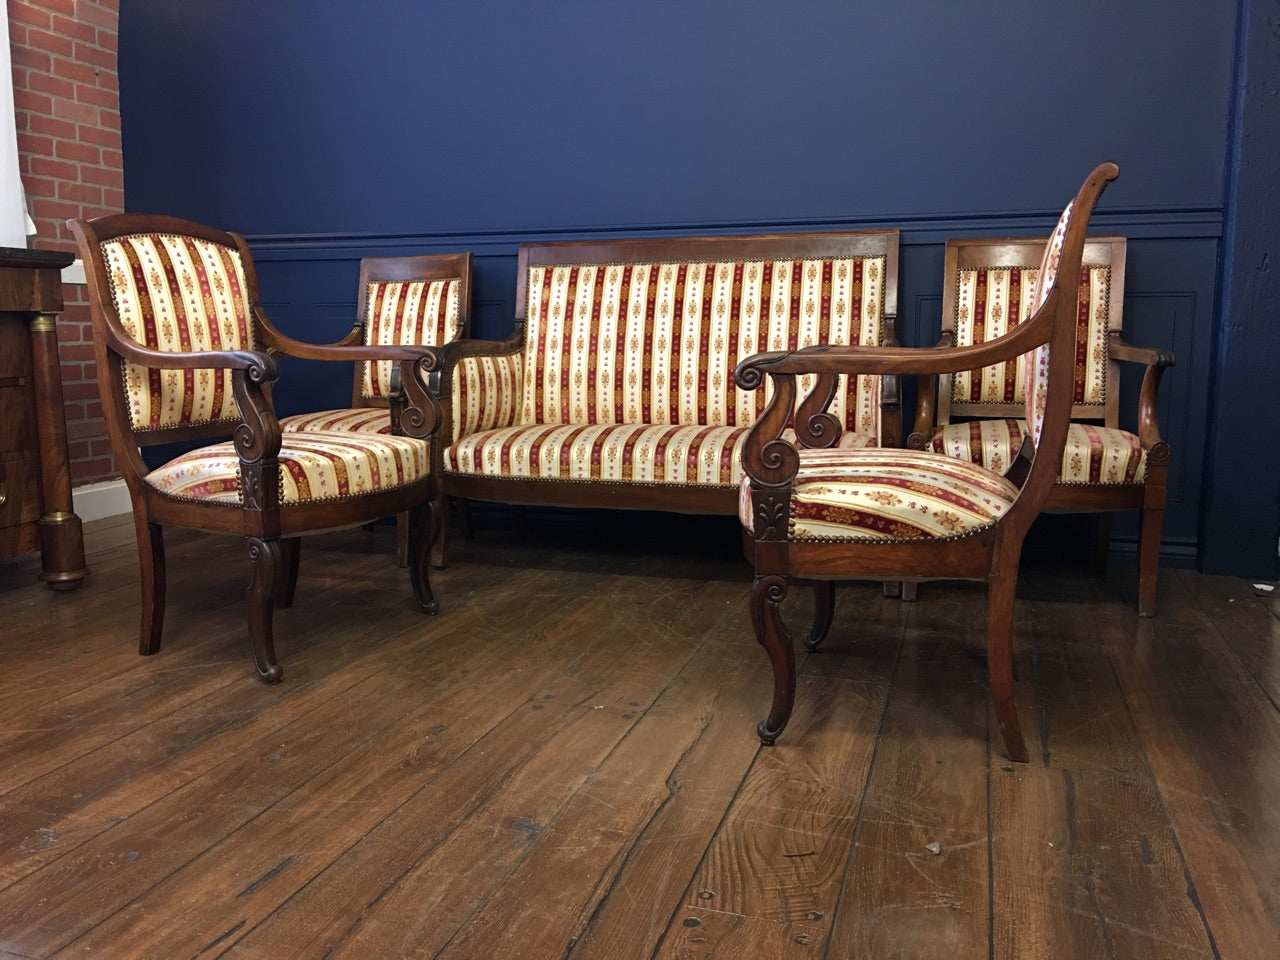 Authentic 19th Century France Empire five Pieces Mahogany Salon - Perfectly Restored - French Antiques www.Decoparis.com